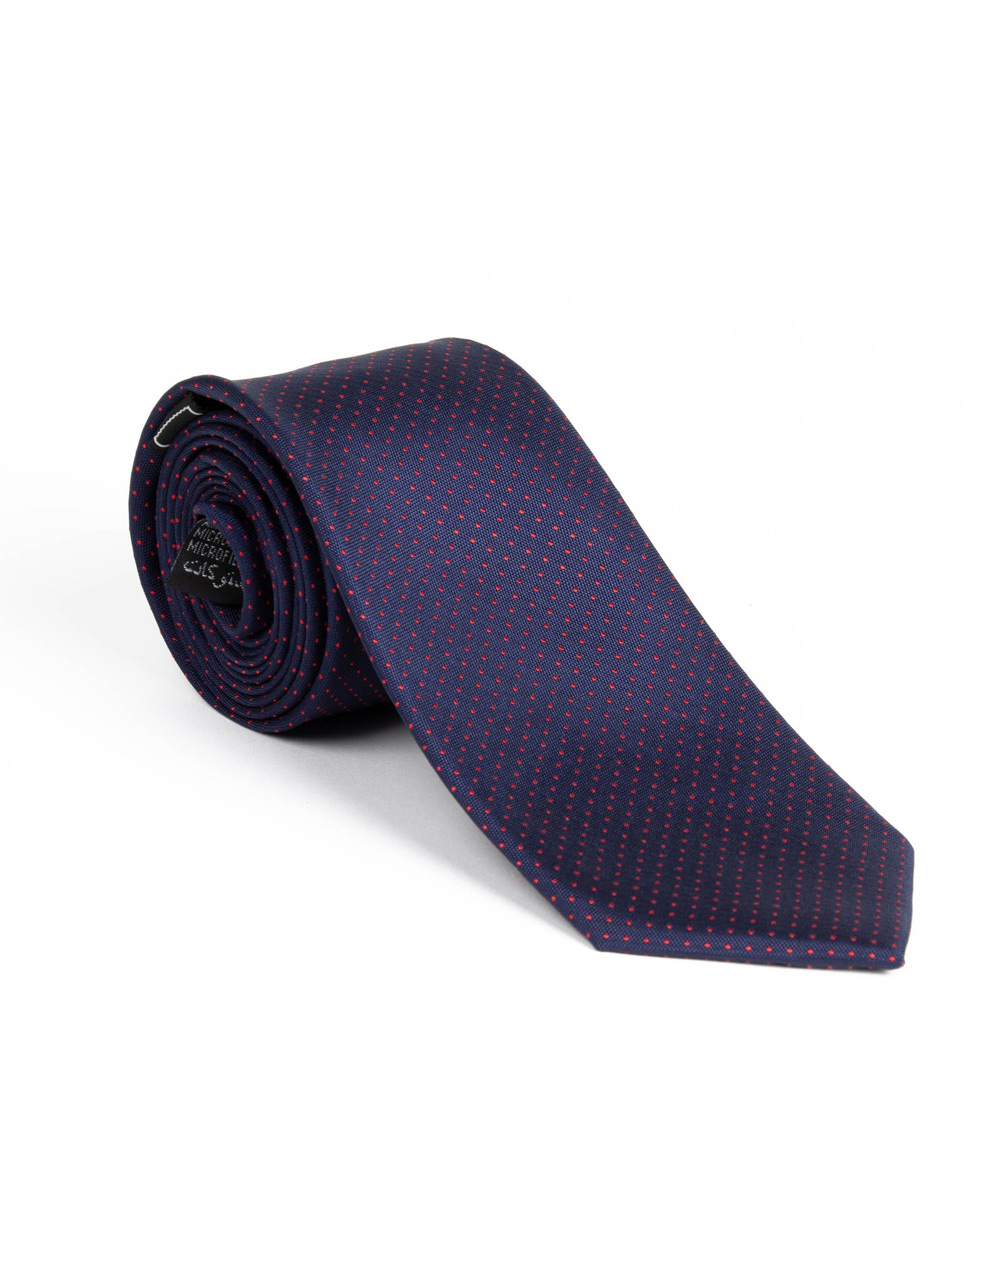 Dark Navy tie with micro polka dots